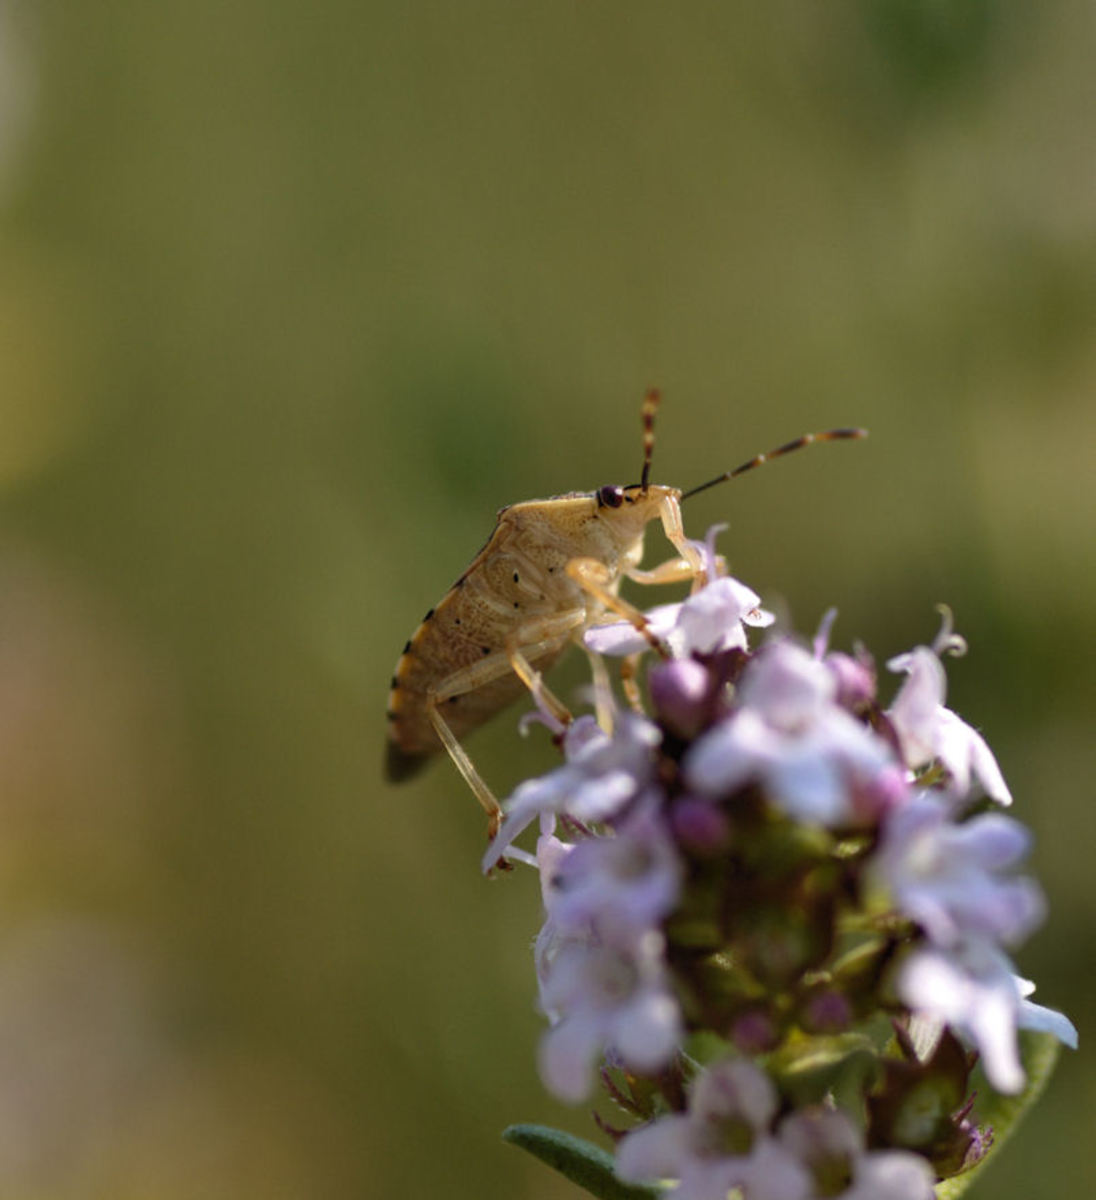 Shield bug on thyme blossom